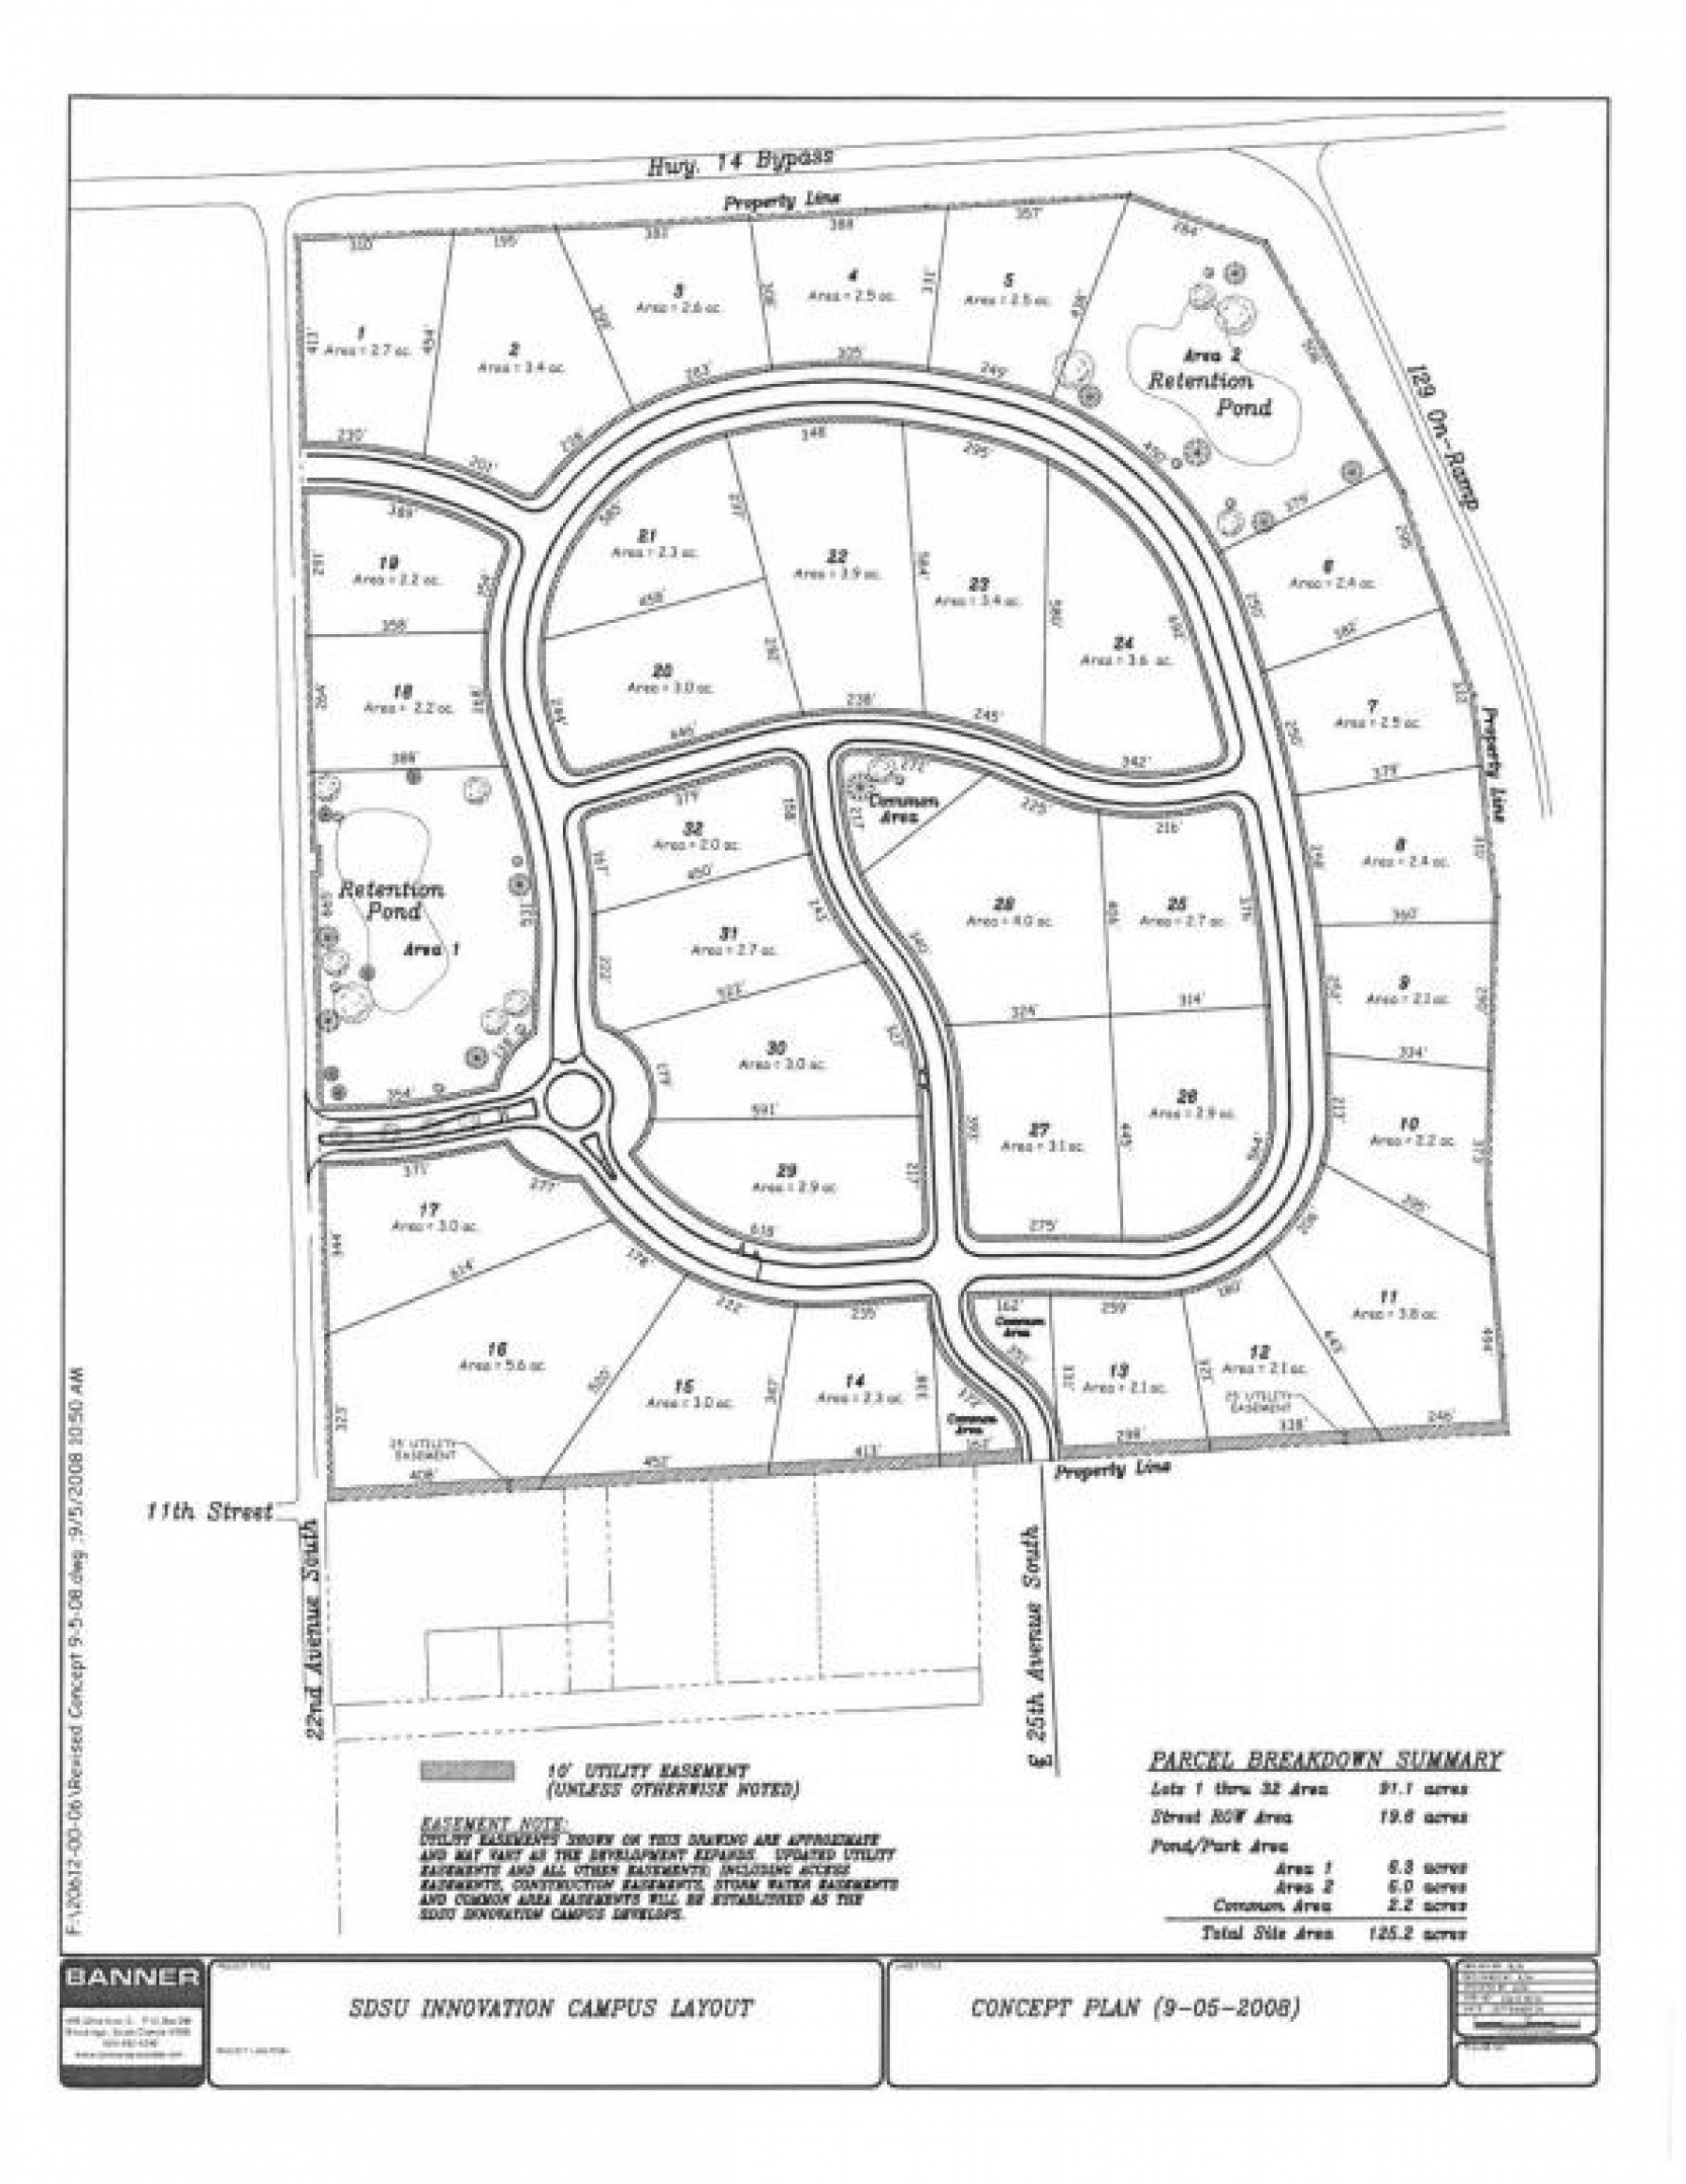 Lot 23 Innovation Campus, Brookings, SD 57006